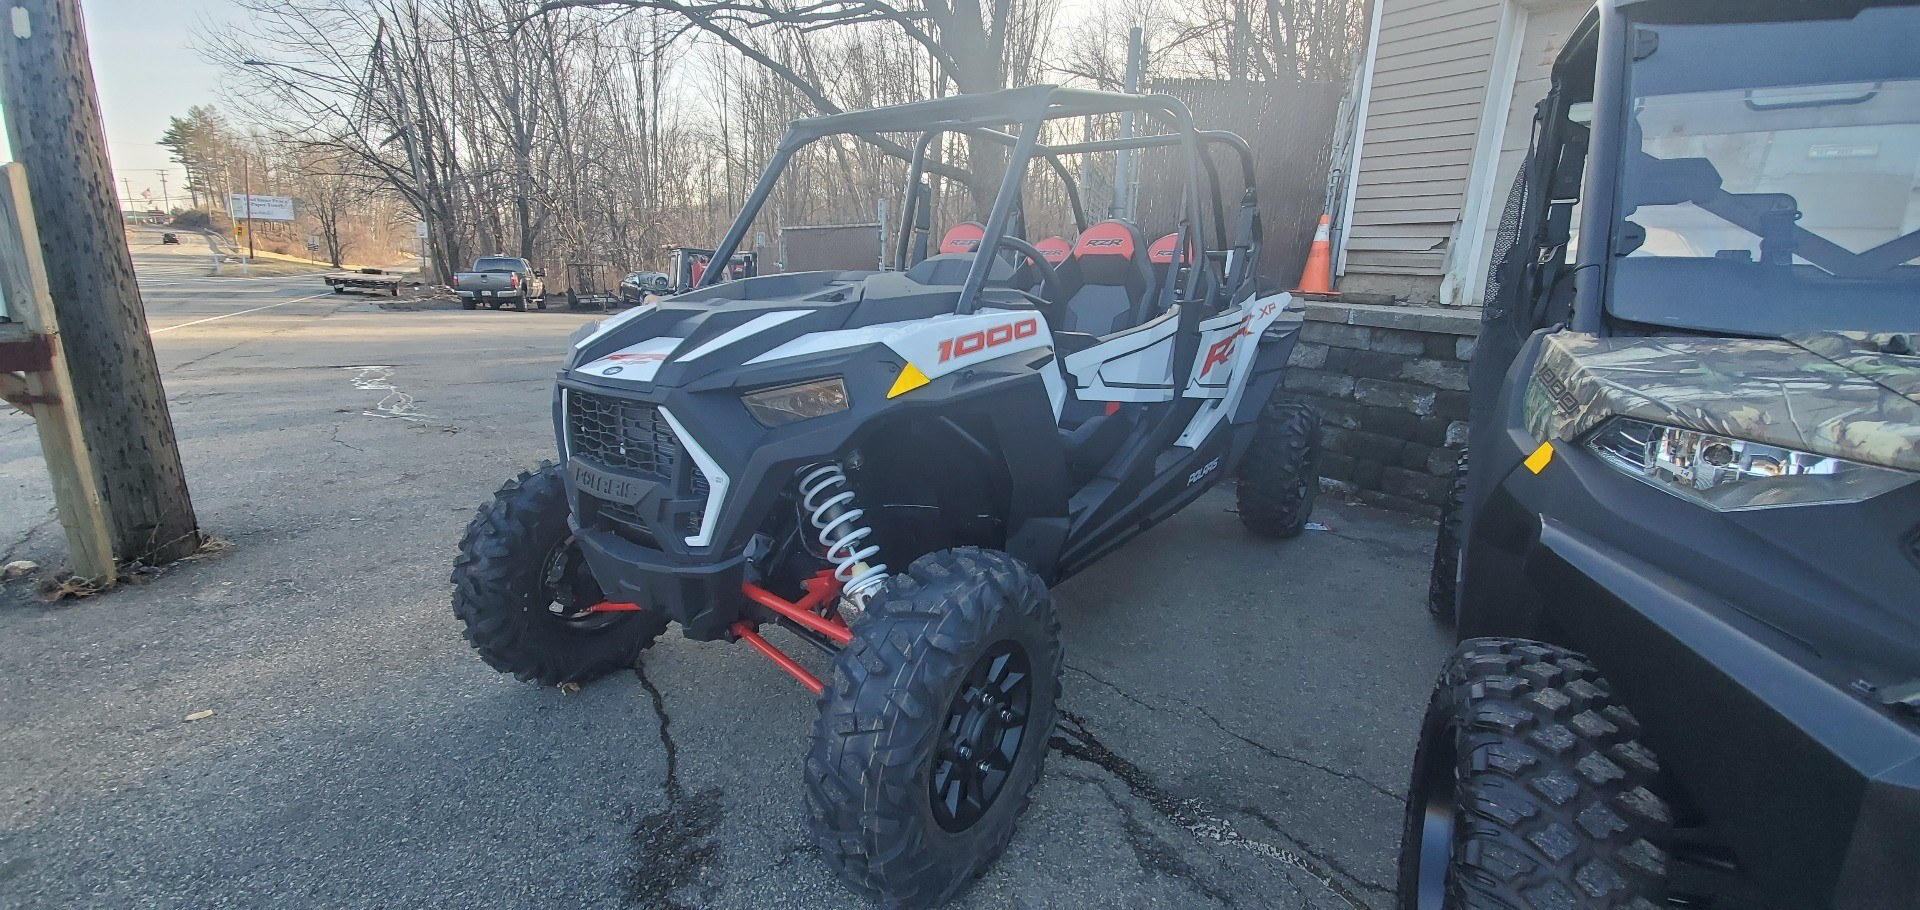 2020 Polaris RZR XP 4 1000 in Ledgewood, New Jersey - Photo 1